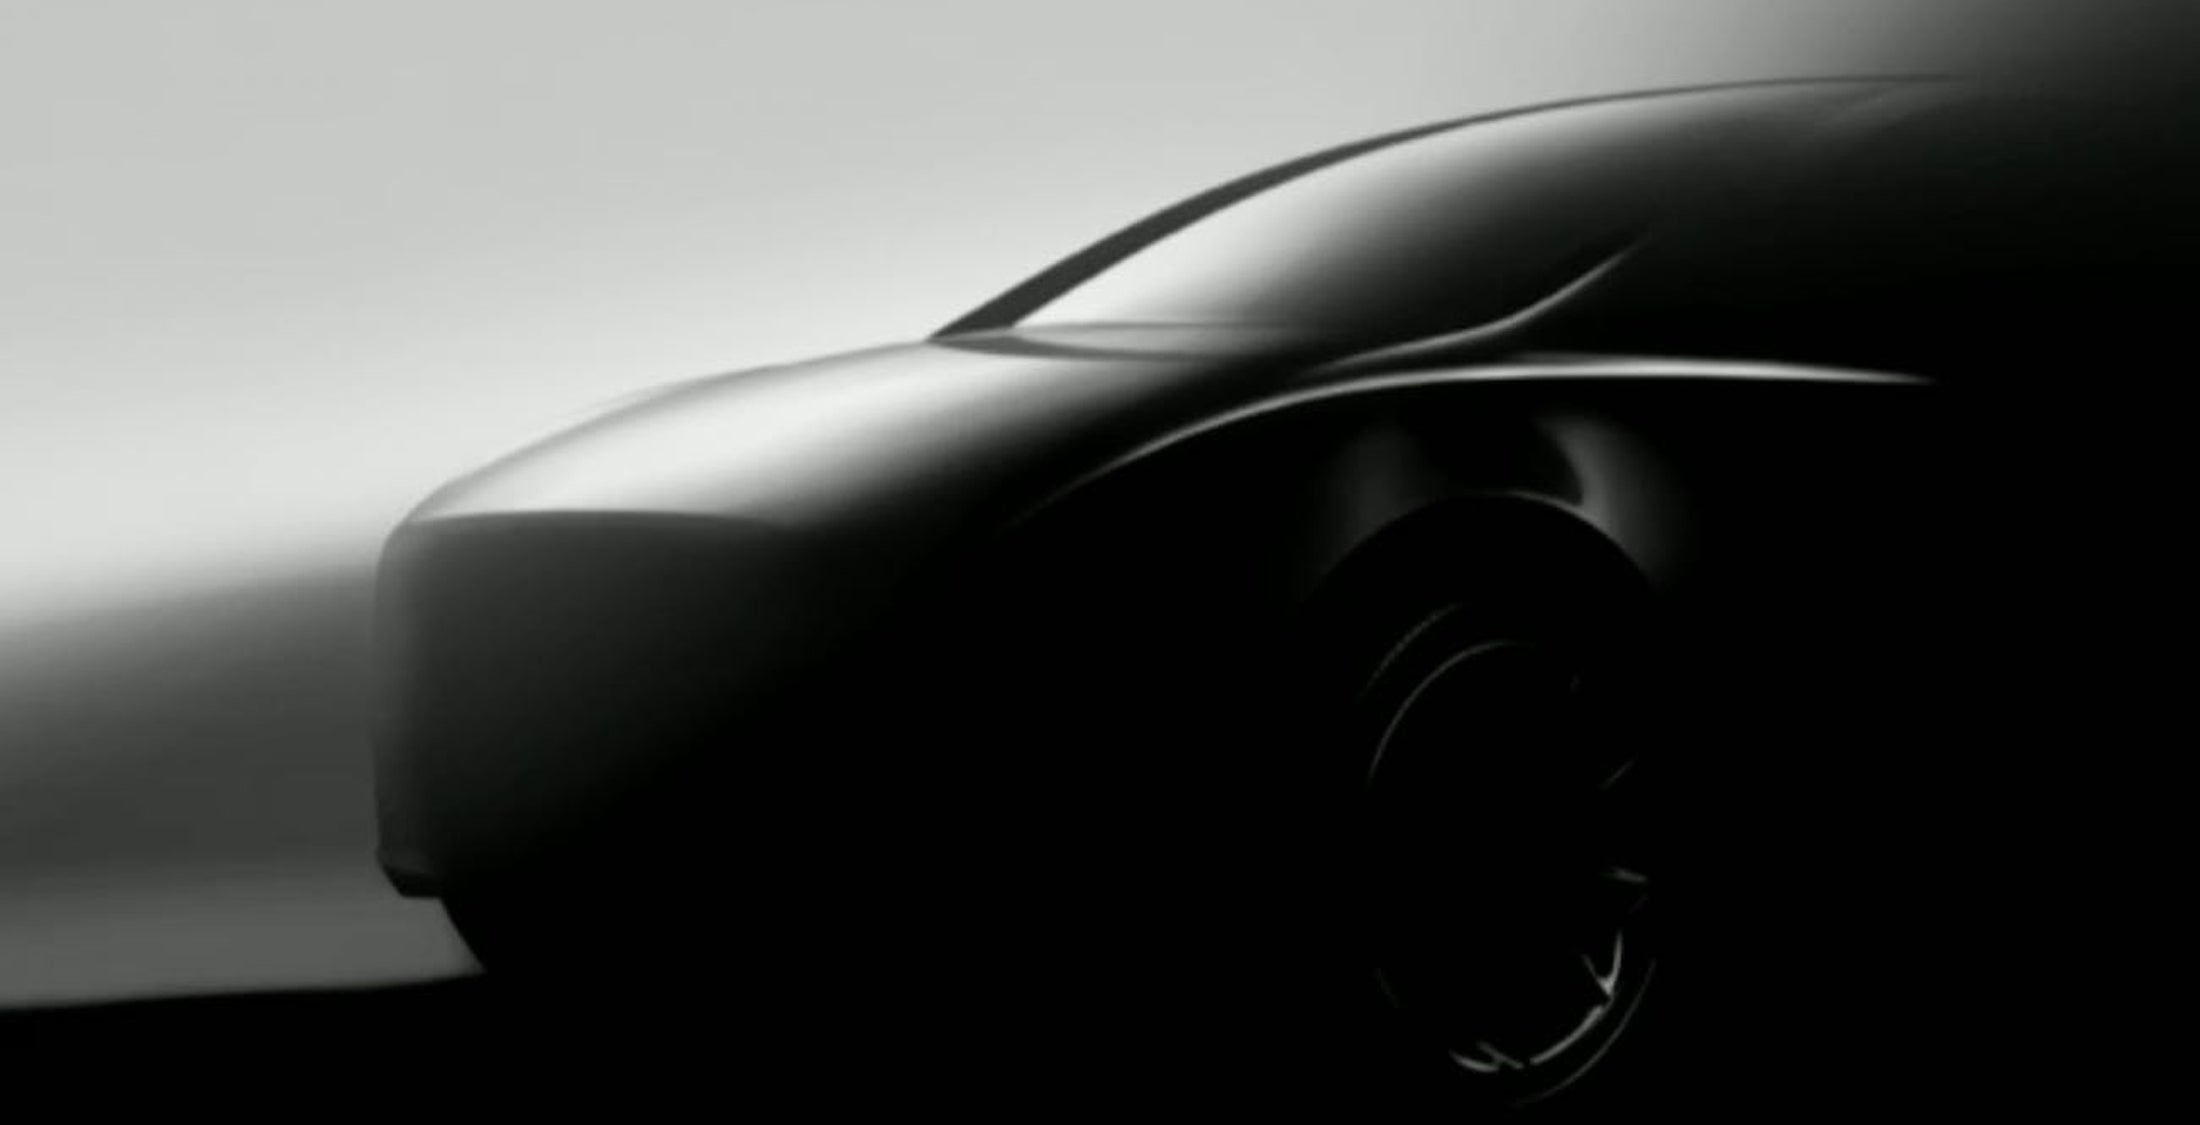 Dc5m United States It In English Created At 2018 07 14 0607 Ban Pirelli Angel Scooter Uk 140 70 Ring The E Car Pioneer Says Design Is Almost Complete With A Prototype Vehicle Pencilled For March 2019 Reveal Musk Floated Idea Of 15